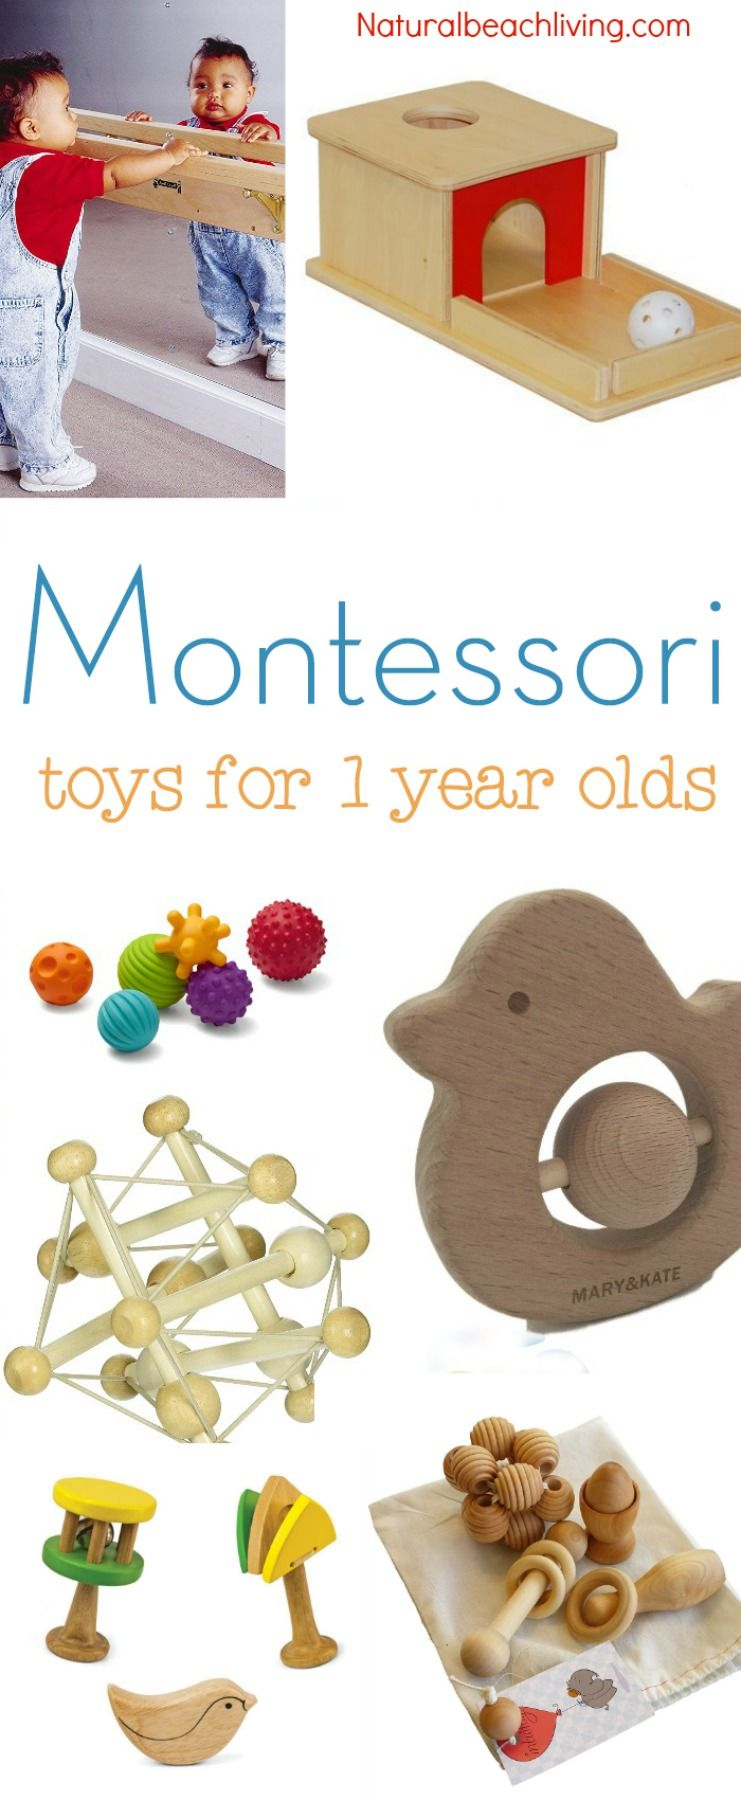 The Best Montessori Toys for 1 year olds | Montessori baby toys ...